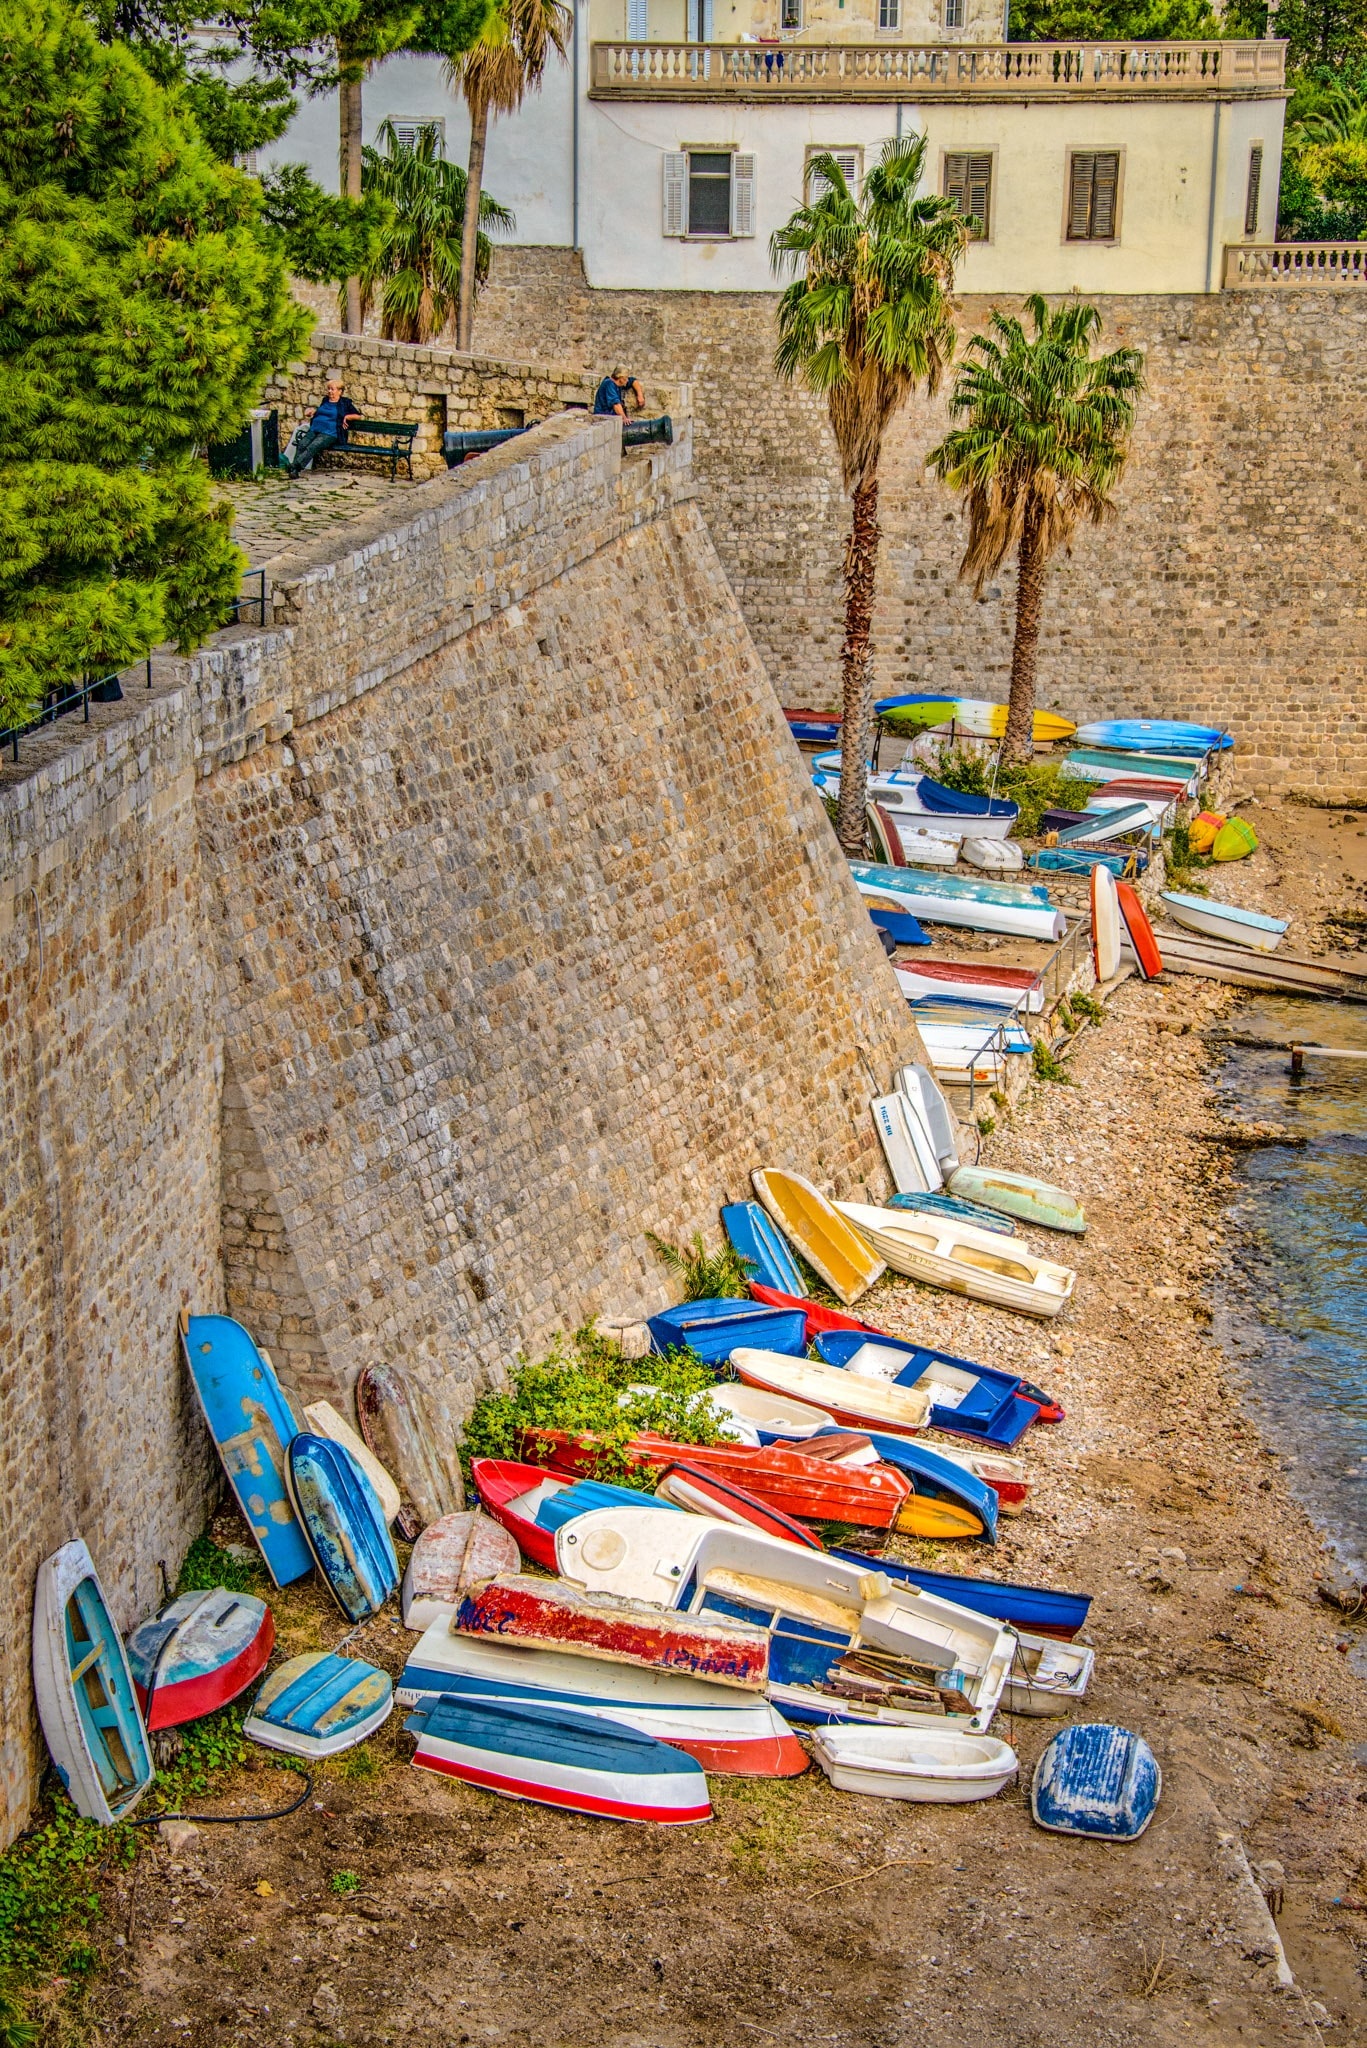 Colorful rowboats pulled onto shore against the Old Dubrovnik City walls in Croatia.